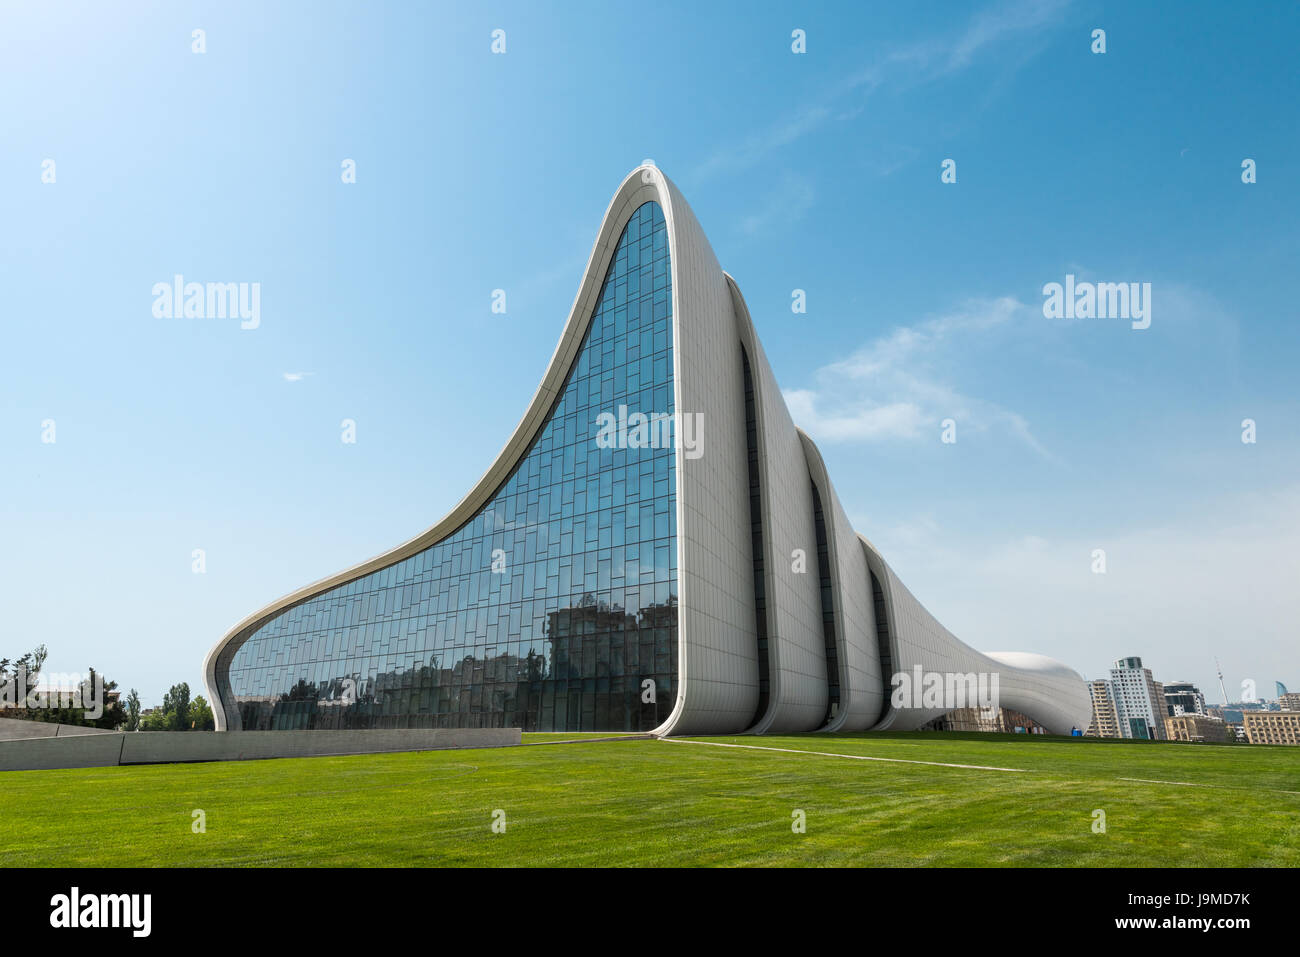 famous architecture in the world. Plain The Azerbaijan Baku May 20 2017 Heydar Aliyev Center Building With  Auditorium Gallery Hall And Museum Designed By Worldfamous Architect Zaha Hadid To Famous Architecture In The World E